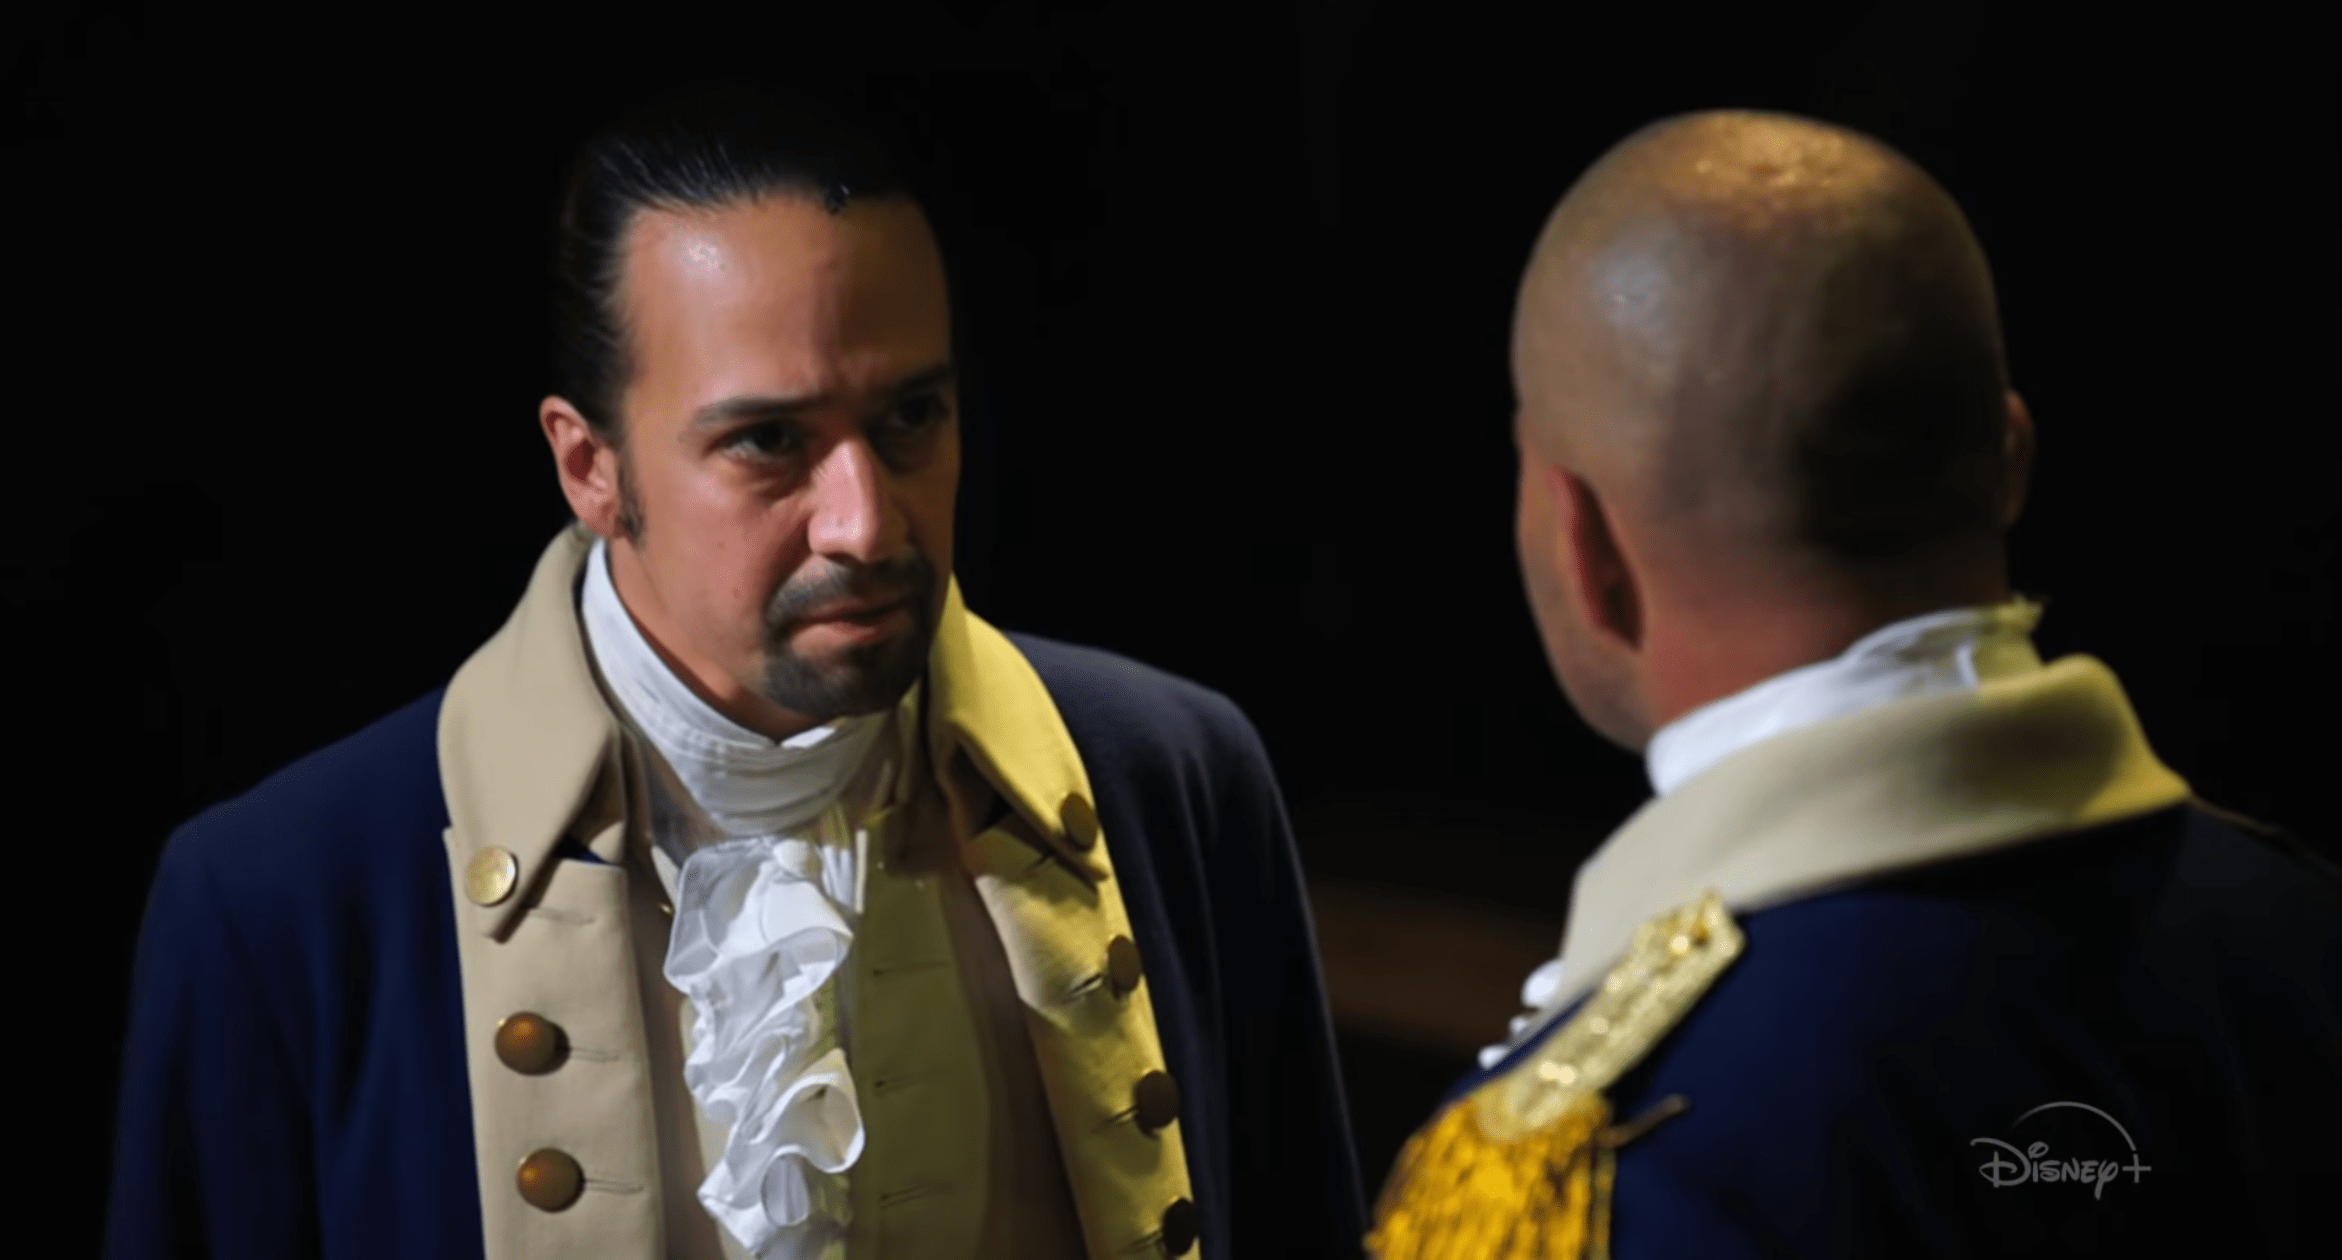 Check out new Disney+ teaser for 'Hamilton' which premieres globally July 3, 2020